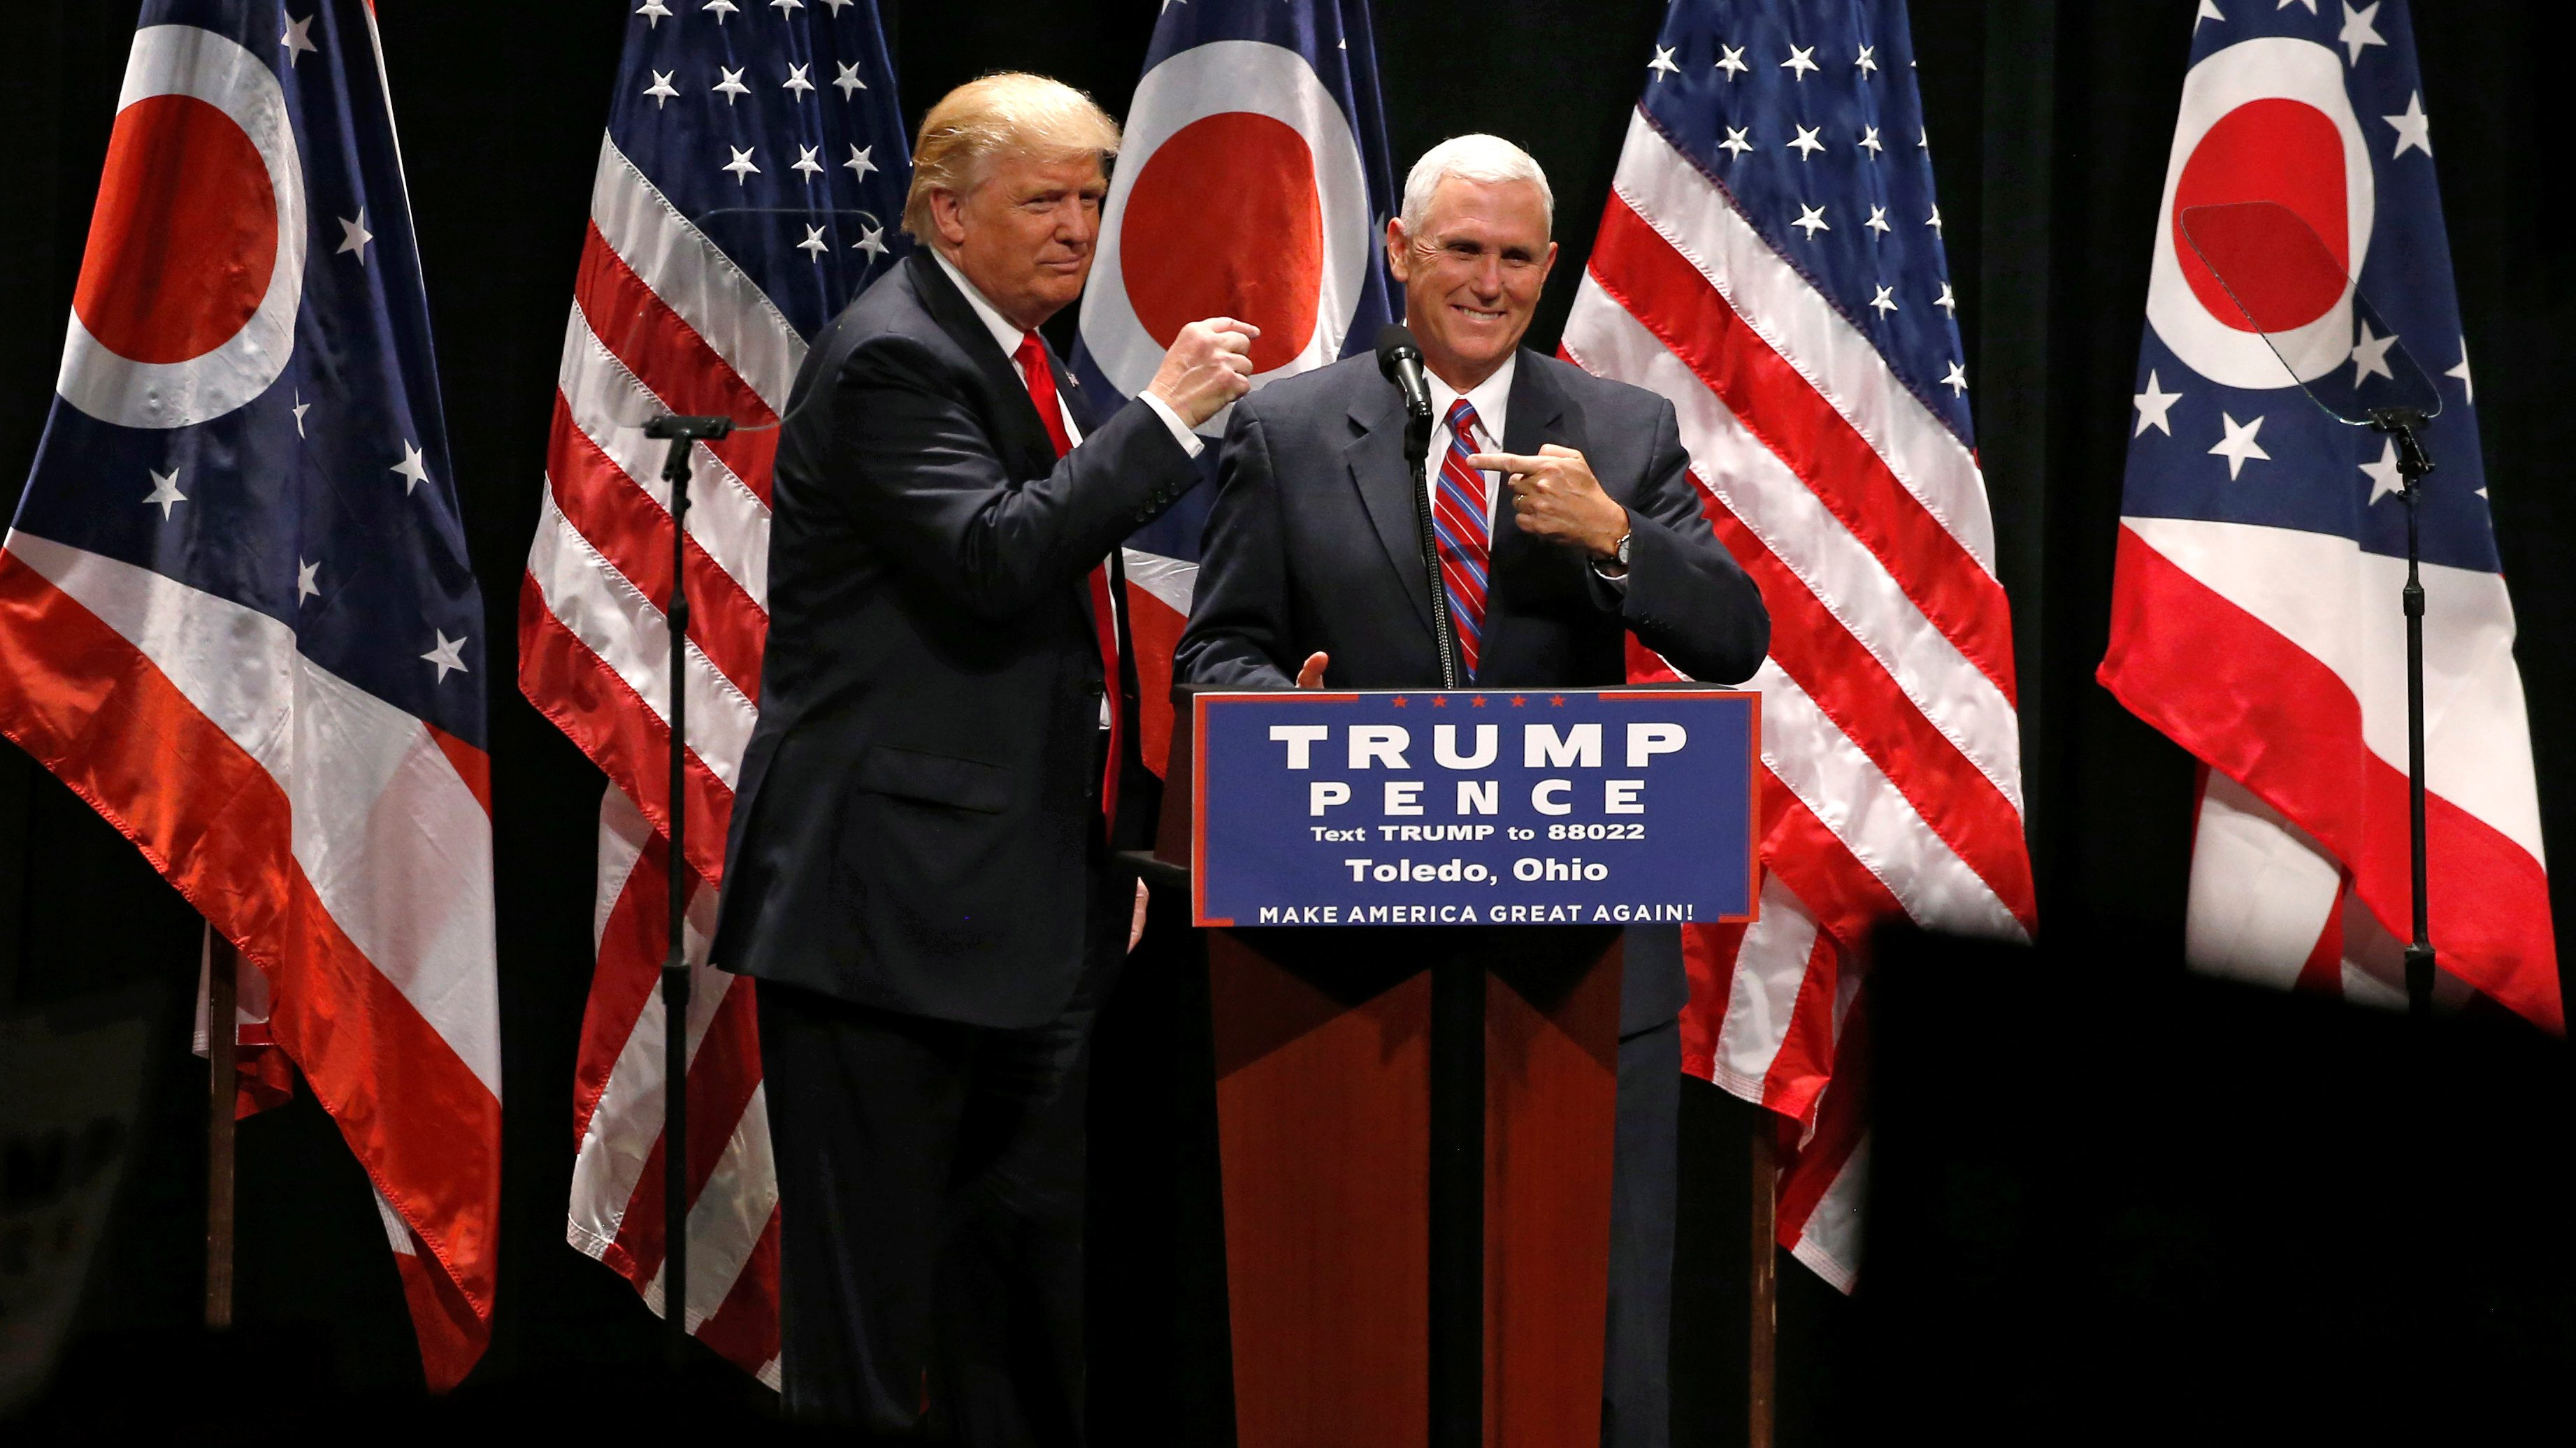 Republican presidential nominee Donald Trump brings vice presidential nominee Mike Pence onstage as he rallies with supporters in Toledo, Ohio.